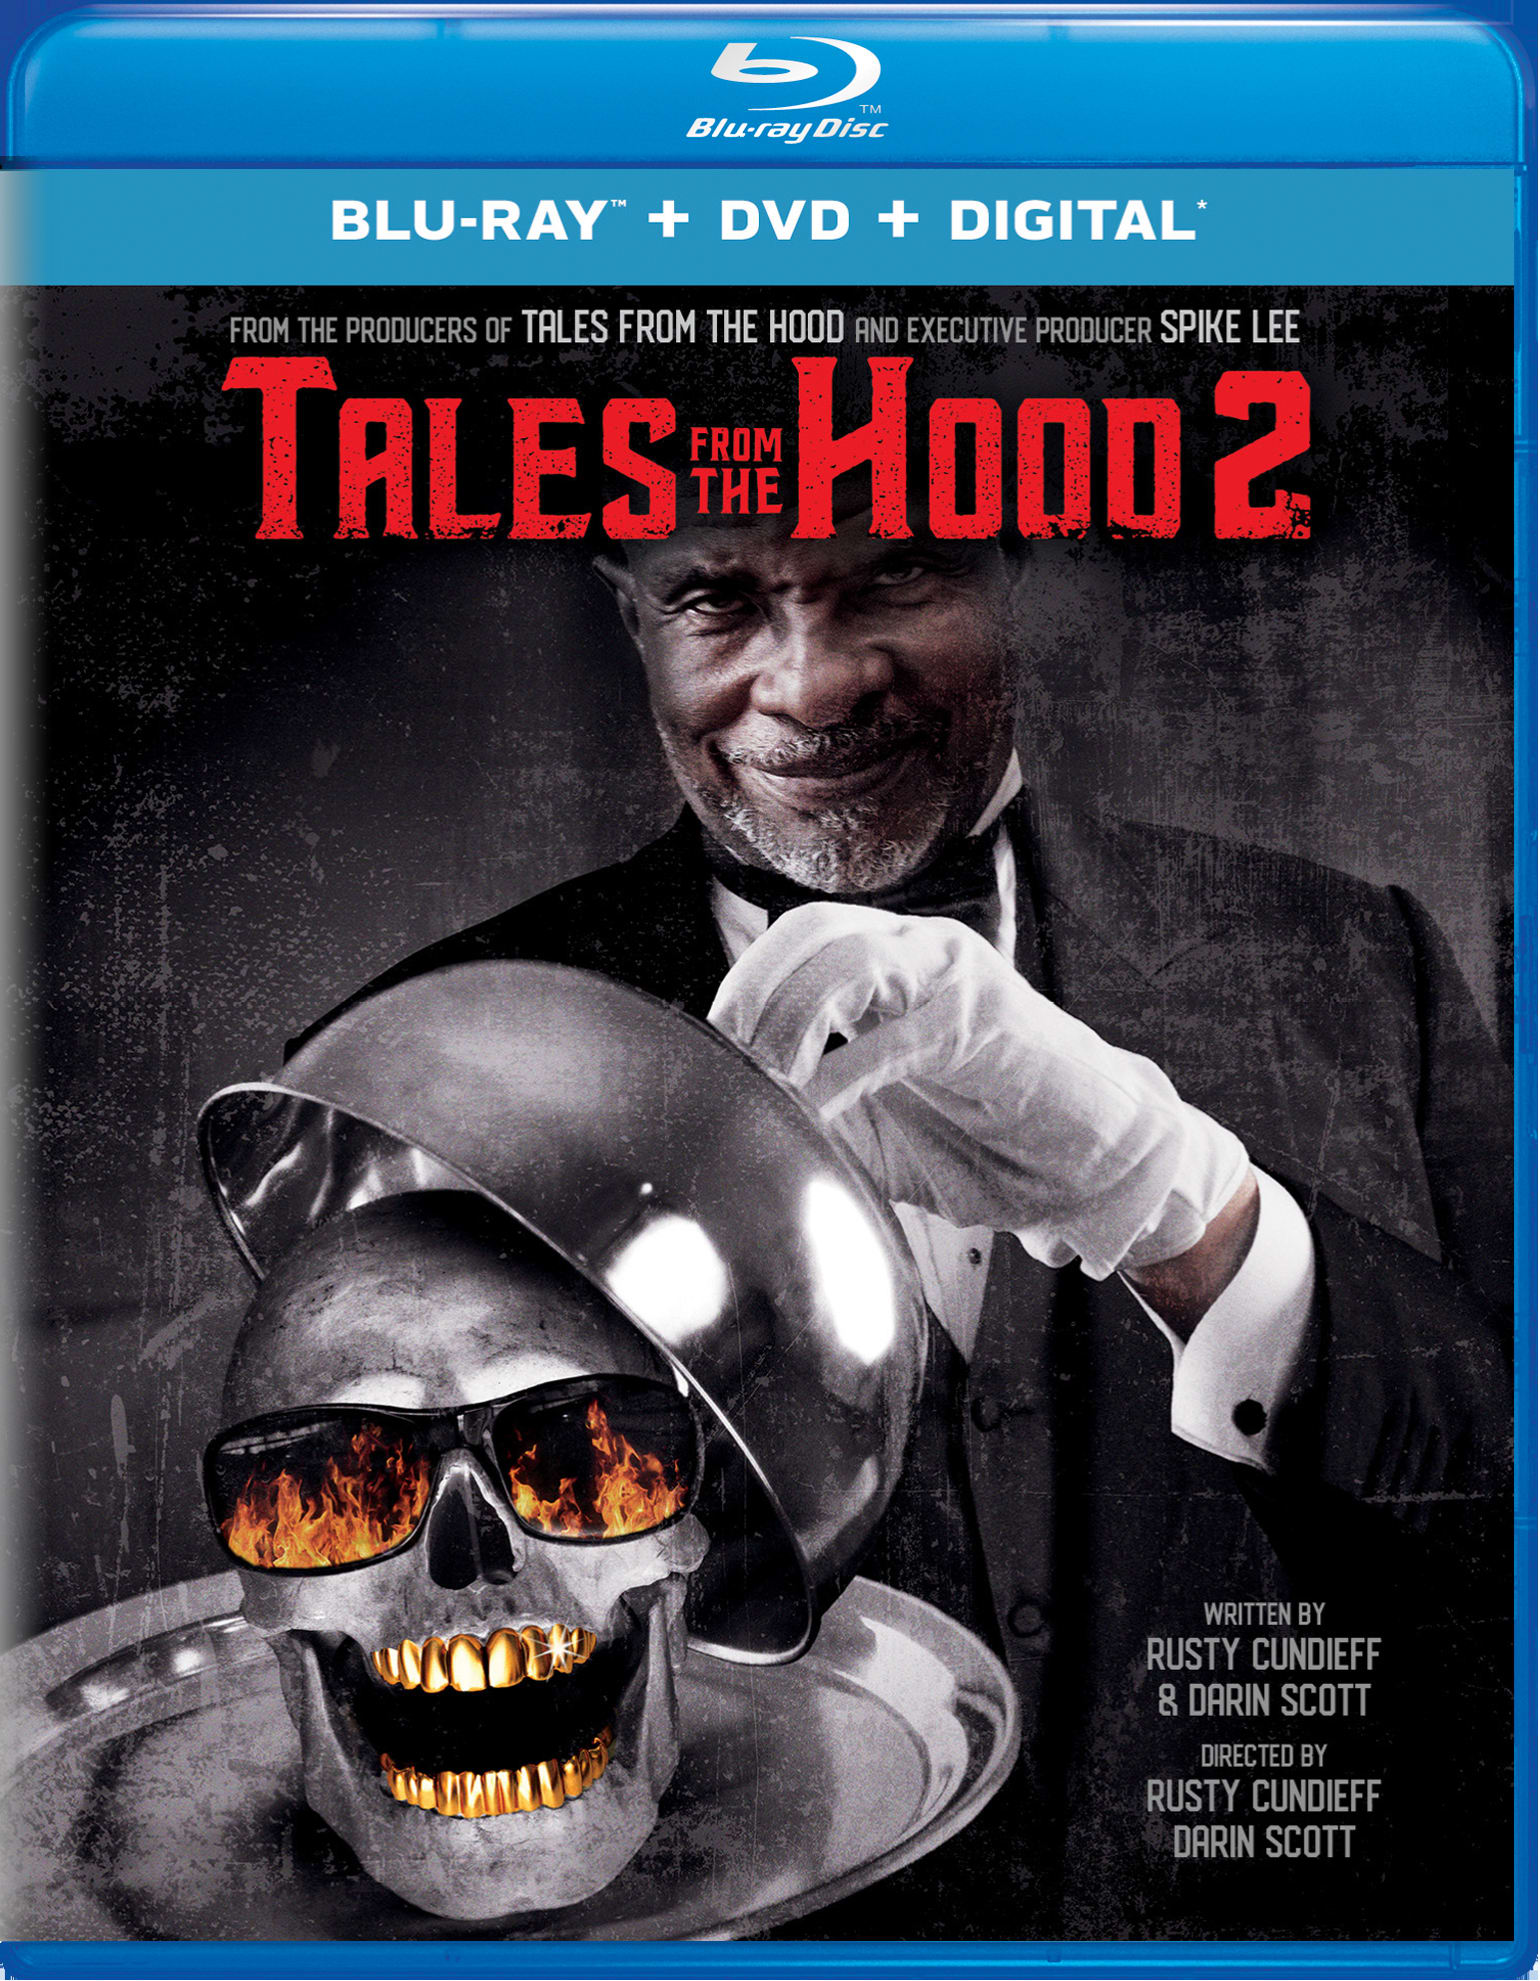 Tales from the Hood 2 (DVD + Digital) [Blu-ray]